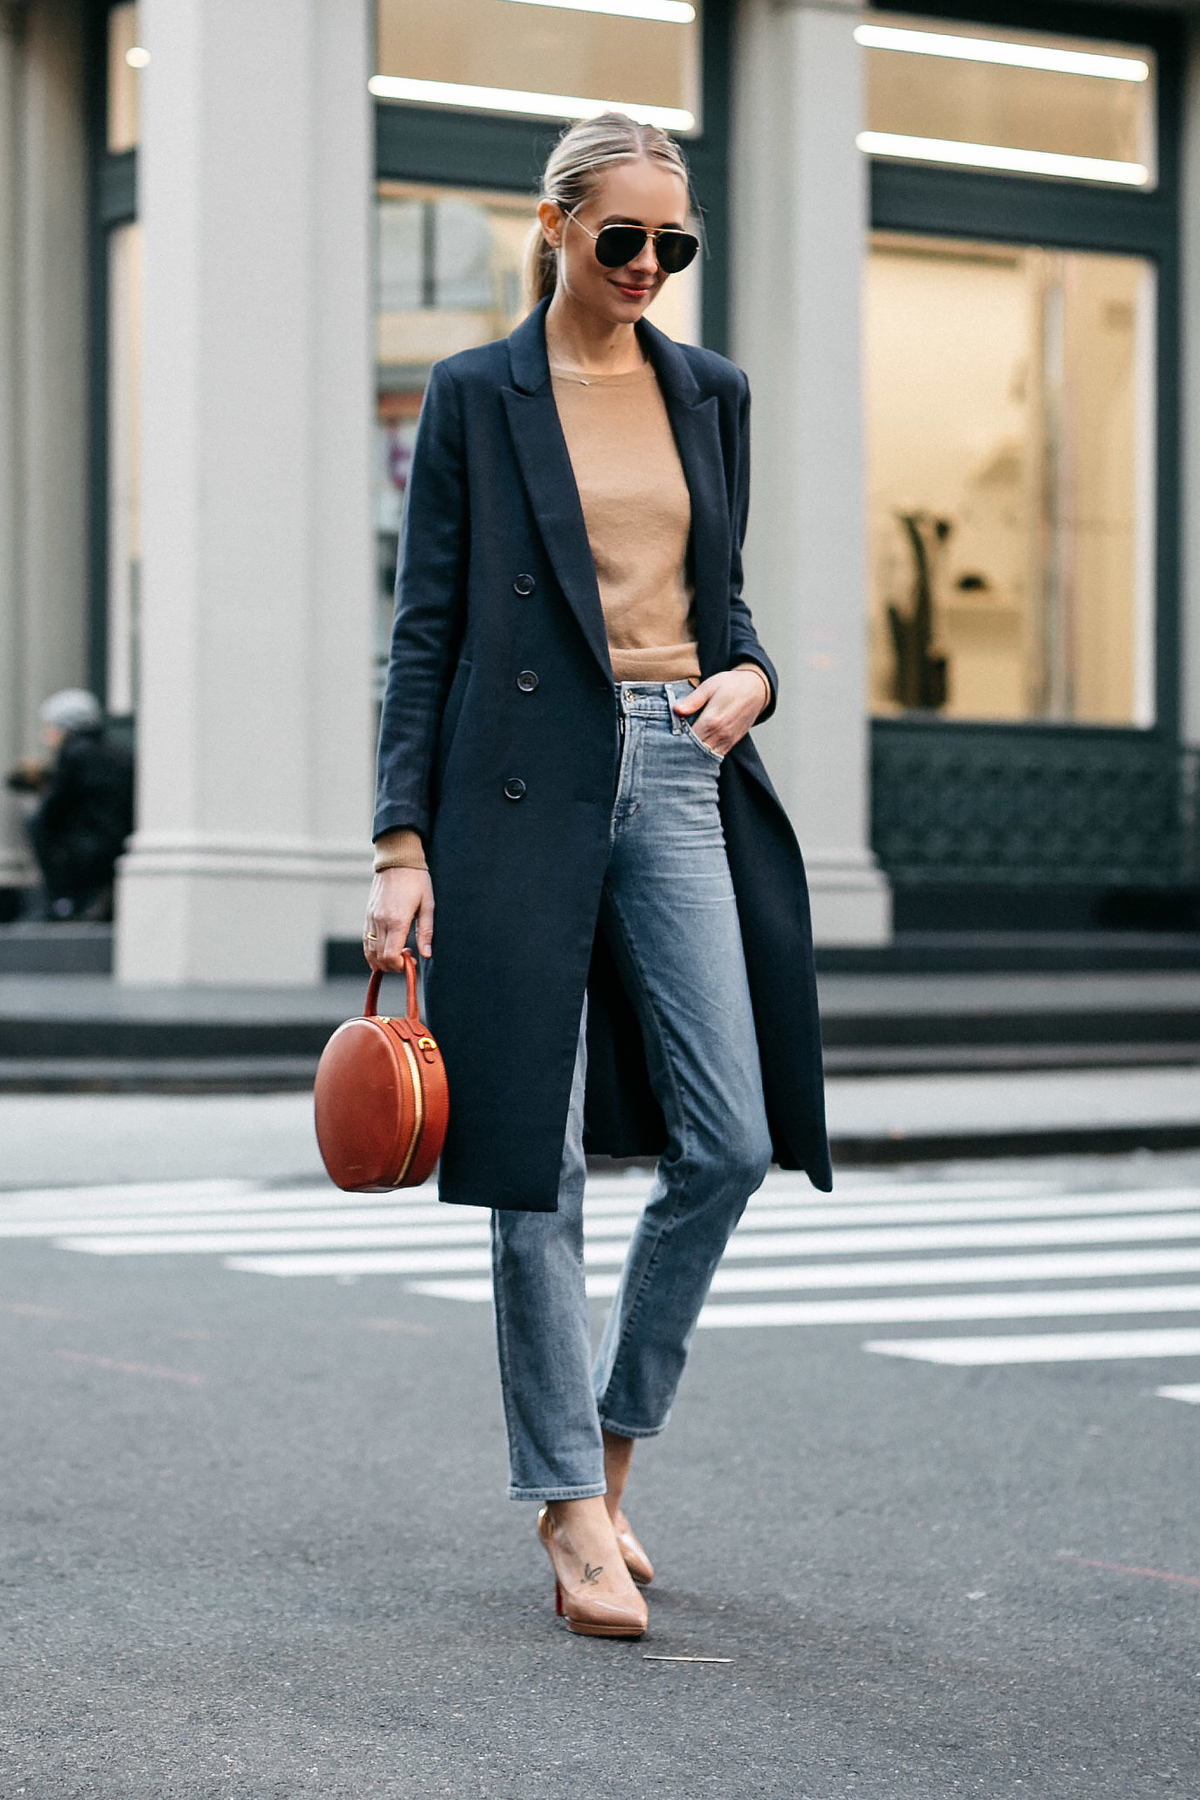 Blonde Woman Wearing Navy Wool Coat Everlane Camel Sweater Relaxed Denim Jeans Christian Louboutin Nude Pumps Mansur Gavriel Circle Handbag Celine Aviator Sunglasses Fashion Jackson Dallas Blogger Fashion Blogger Street Style NYFW